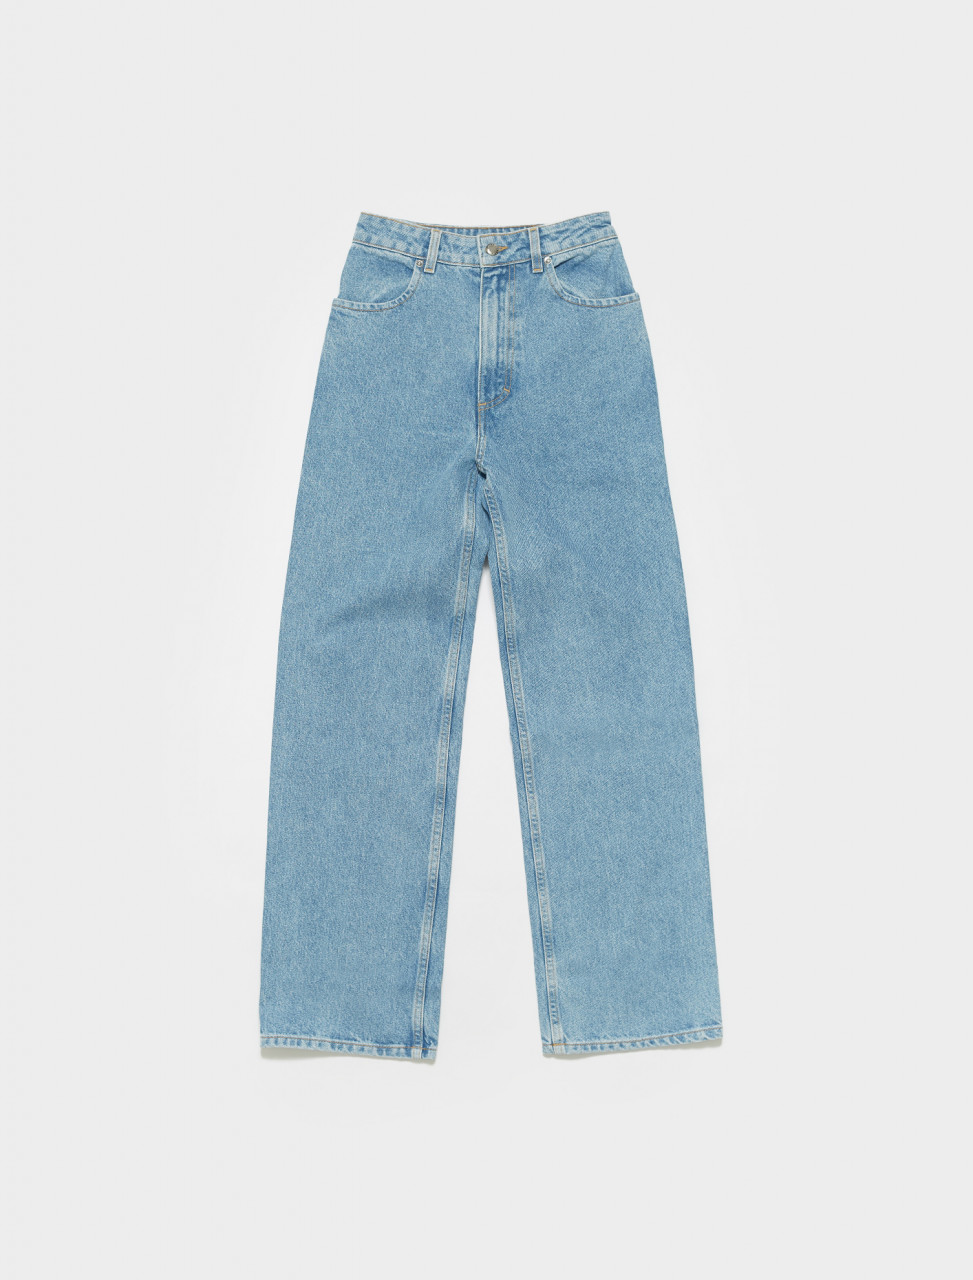 334-EL-CORE-TB ECKHAUS LATTA WIDE LEG JEAN IN TRUE BLUE